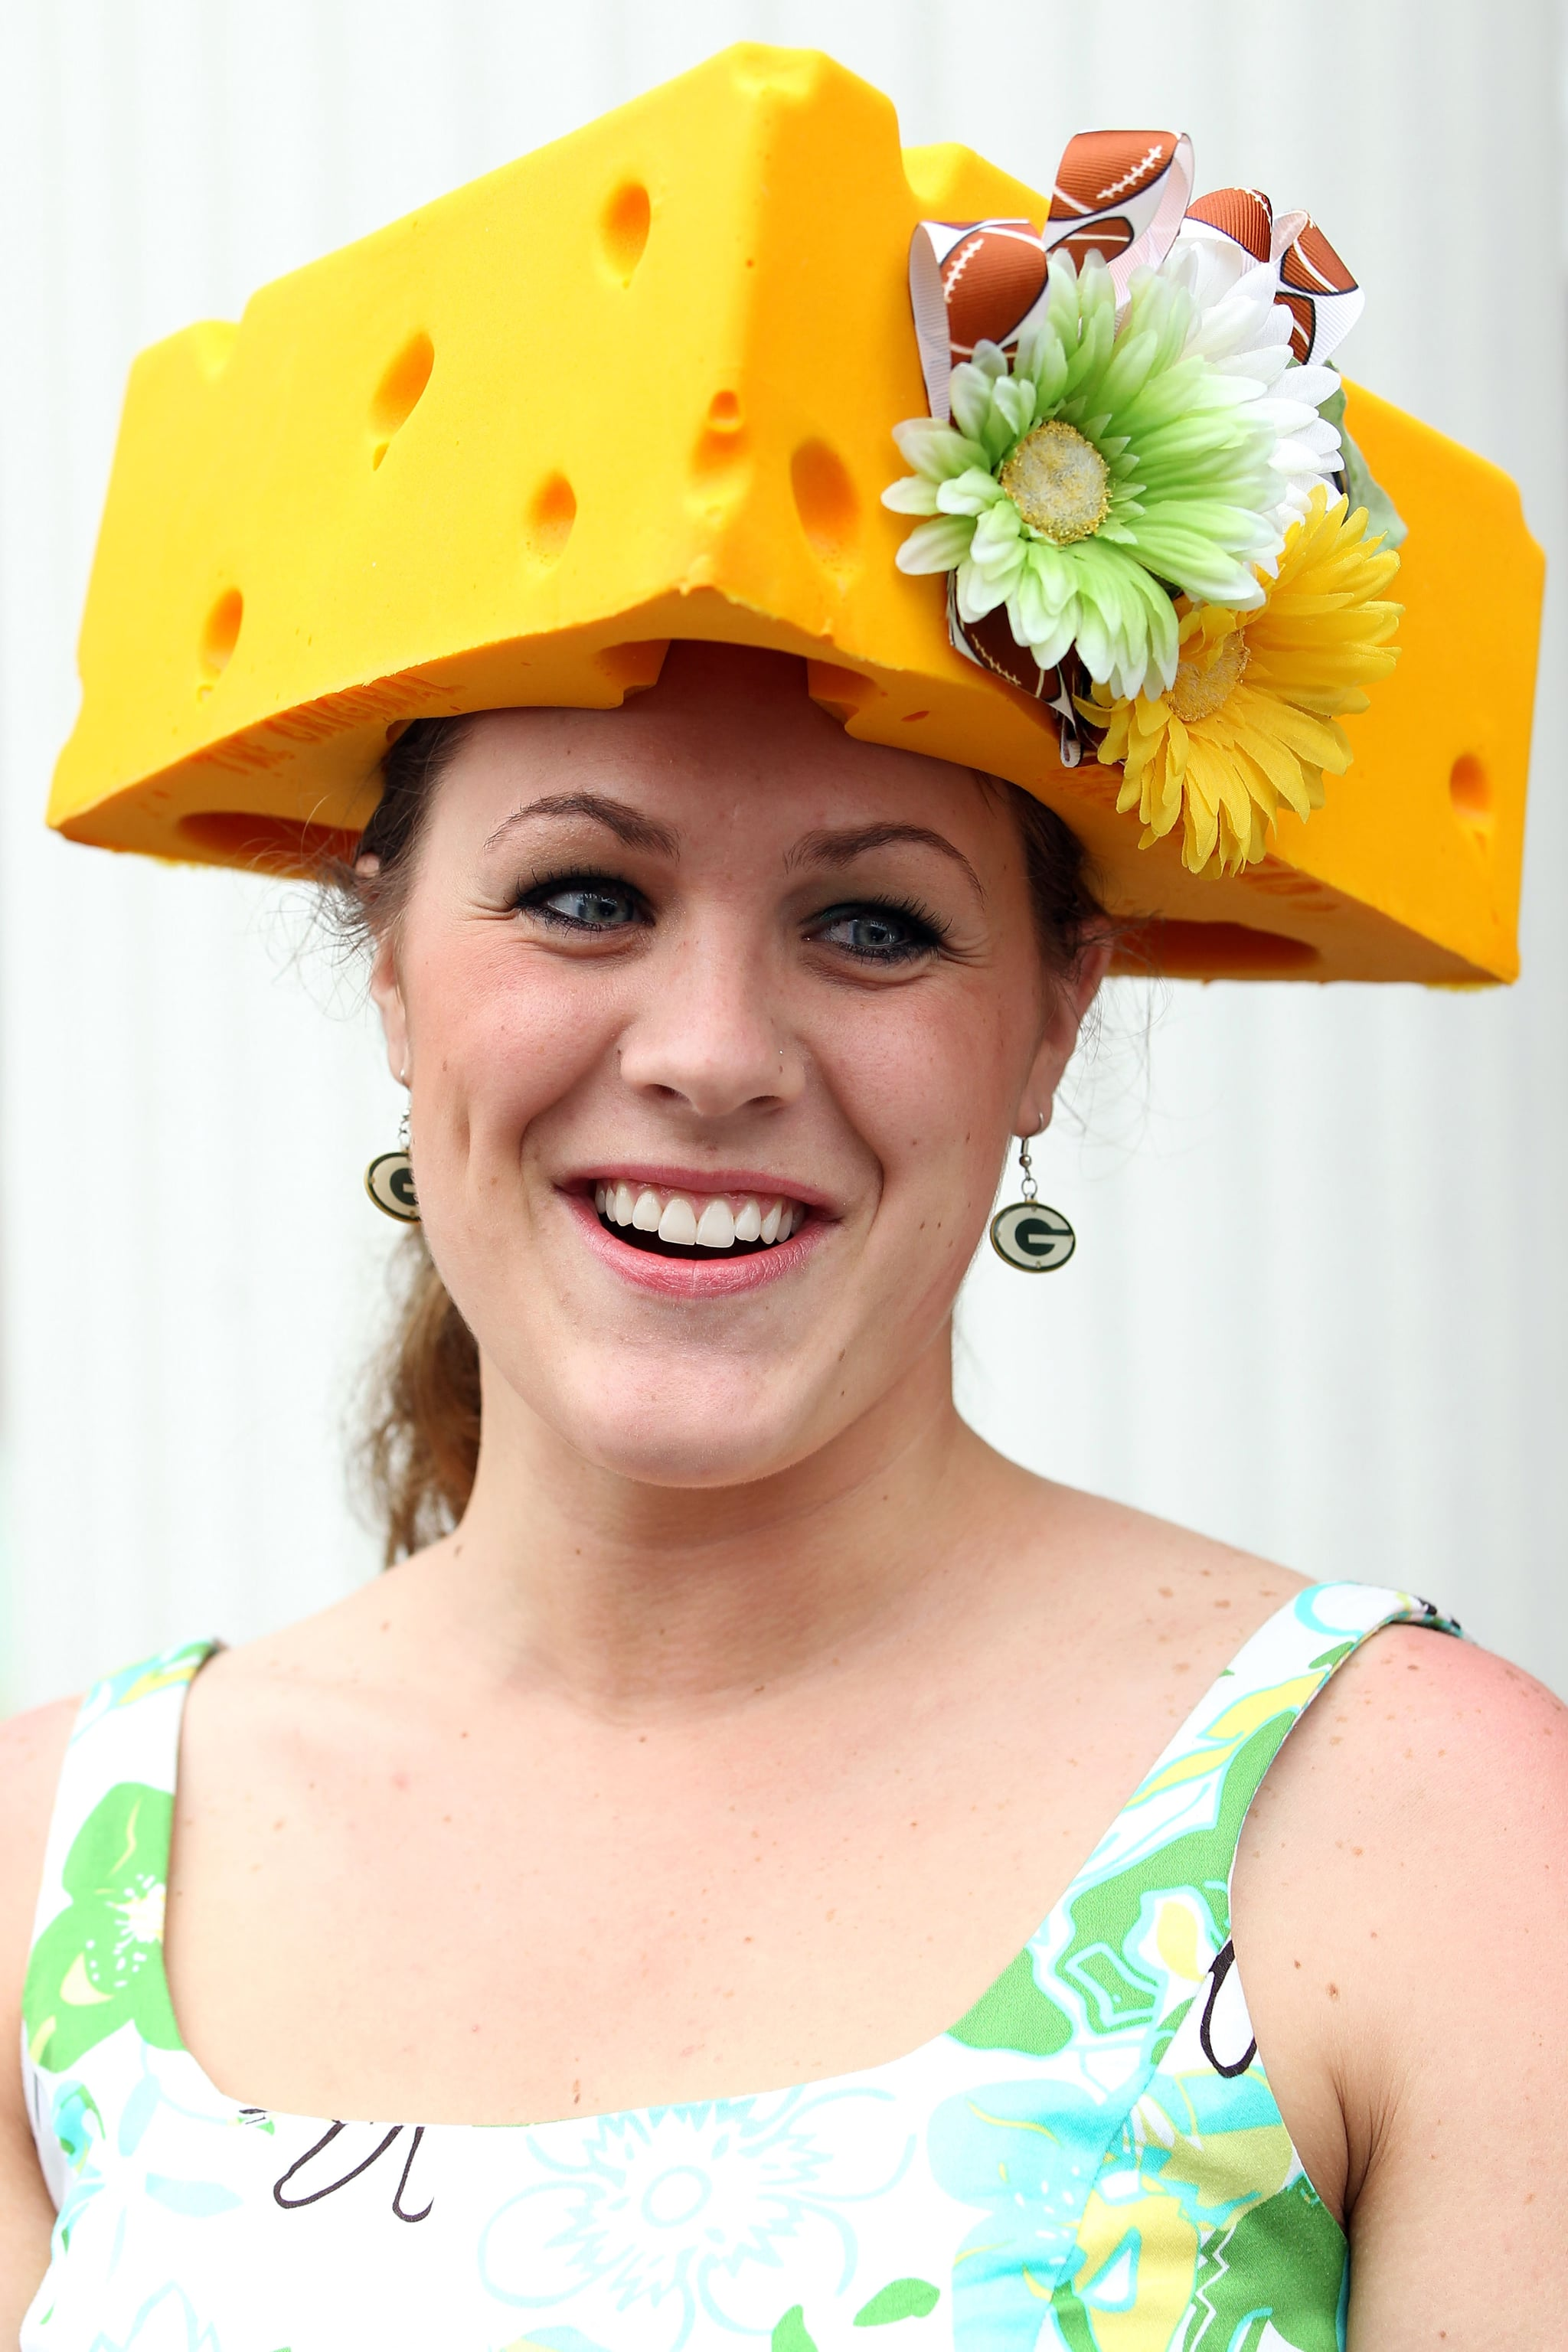 In 2011, this woman took the Kentucky Derby as a chance to show her love of cheese.